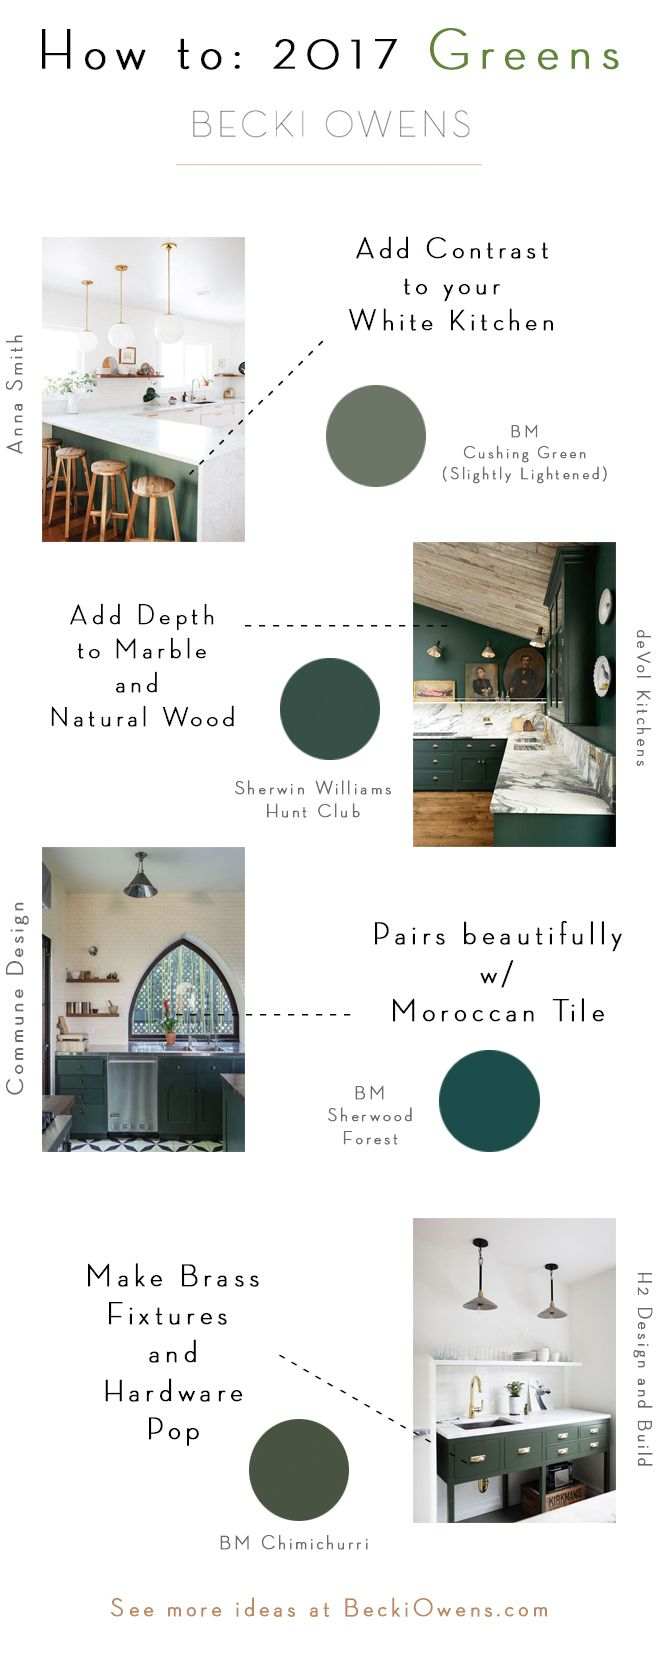 BECKI OWENS-- New Colors of 2017: Green in the Kitchen